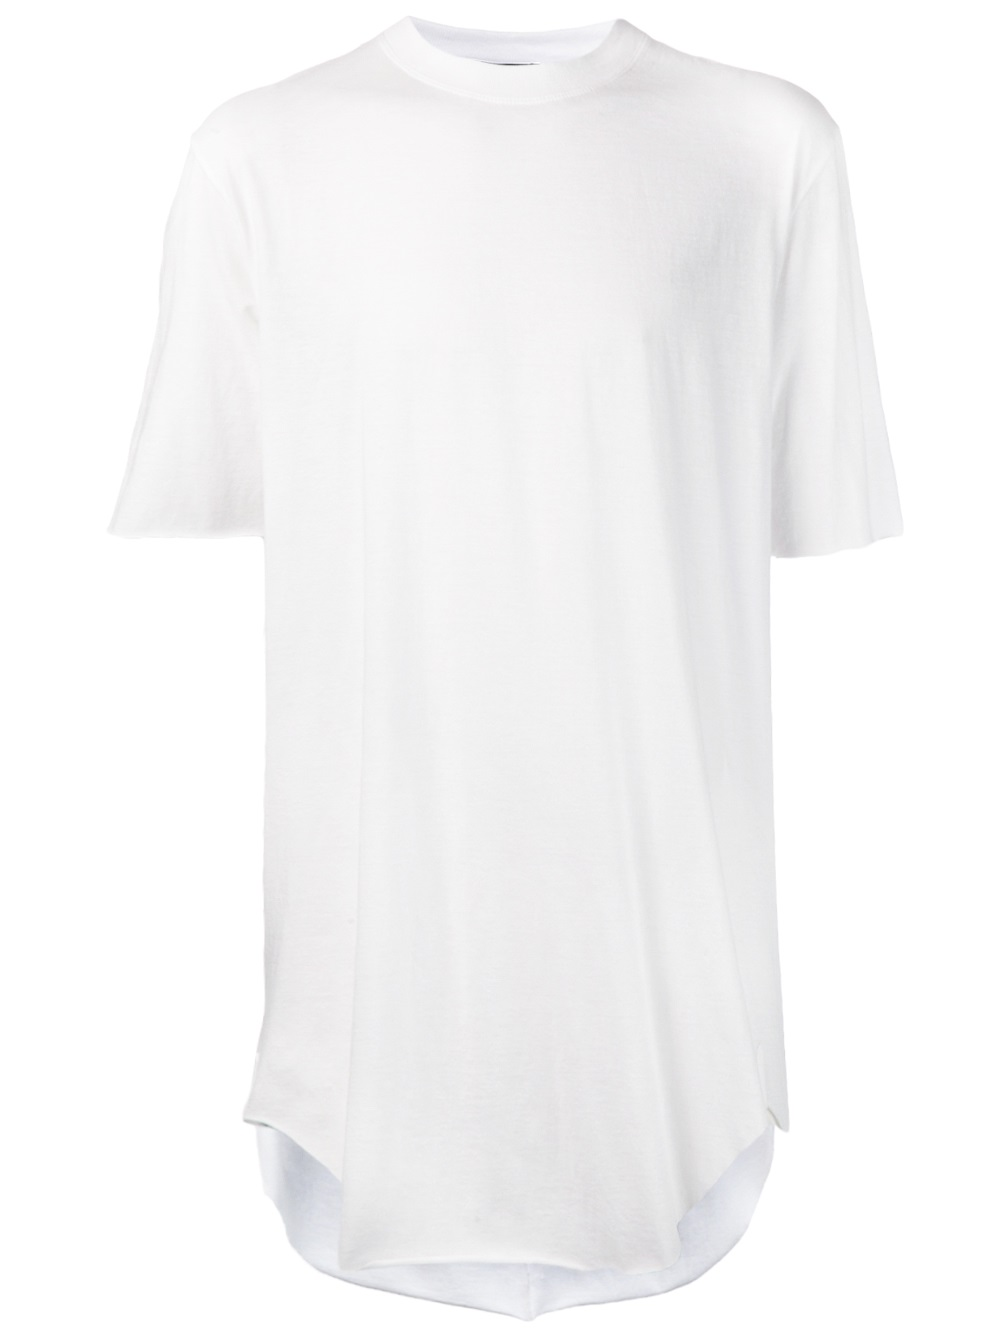 50 NEW MENS Wholesale Plain Gildan % Cotton White Adult T-Shirts S M L XL Brand New · Gildan · L out of 5 stars - 50 NEW MENS Wholesale Plain Gildan % Cotton White Adult T .